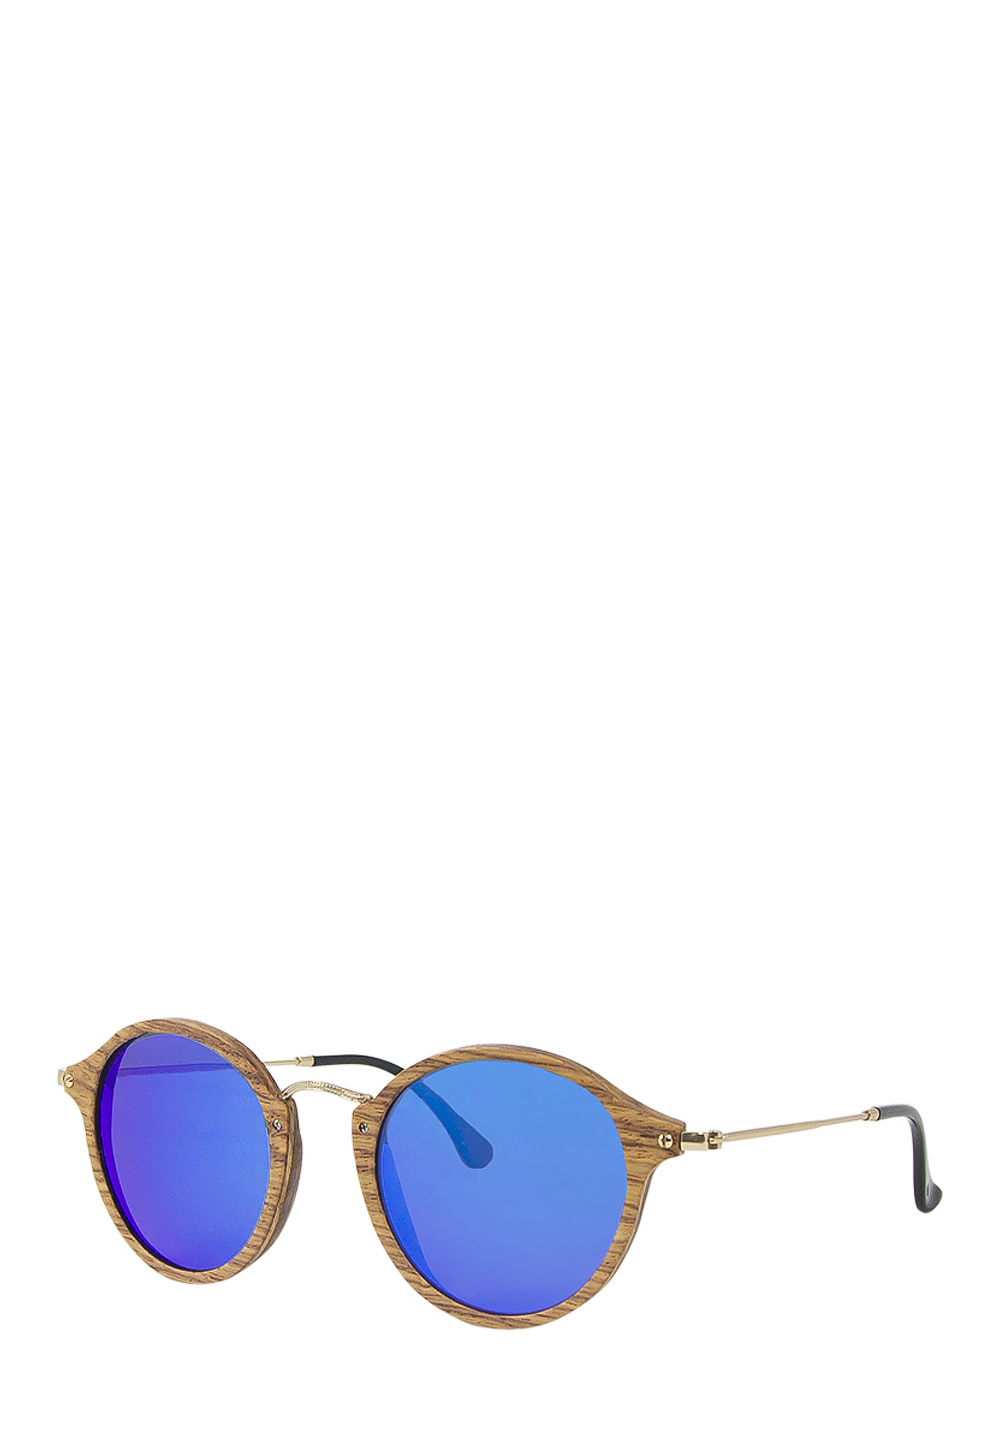 Time FOR Wood Sonnenbrille Aqua, UV 400, braun/gold